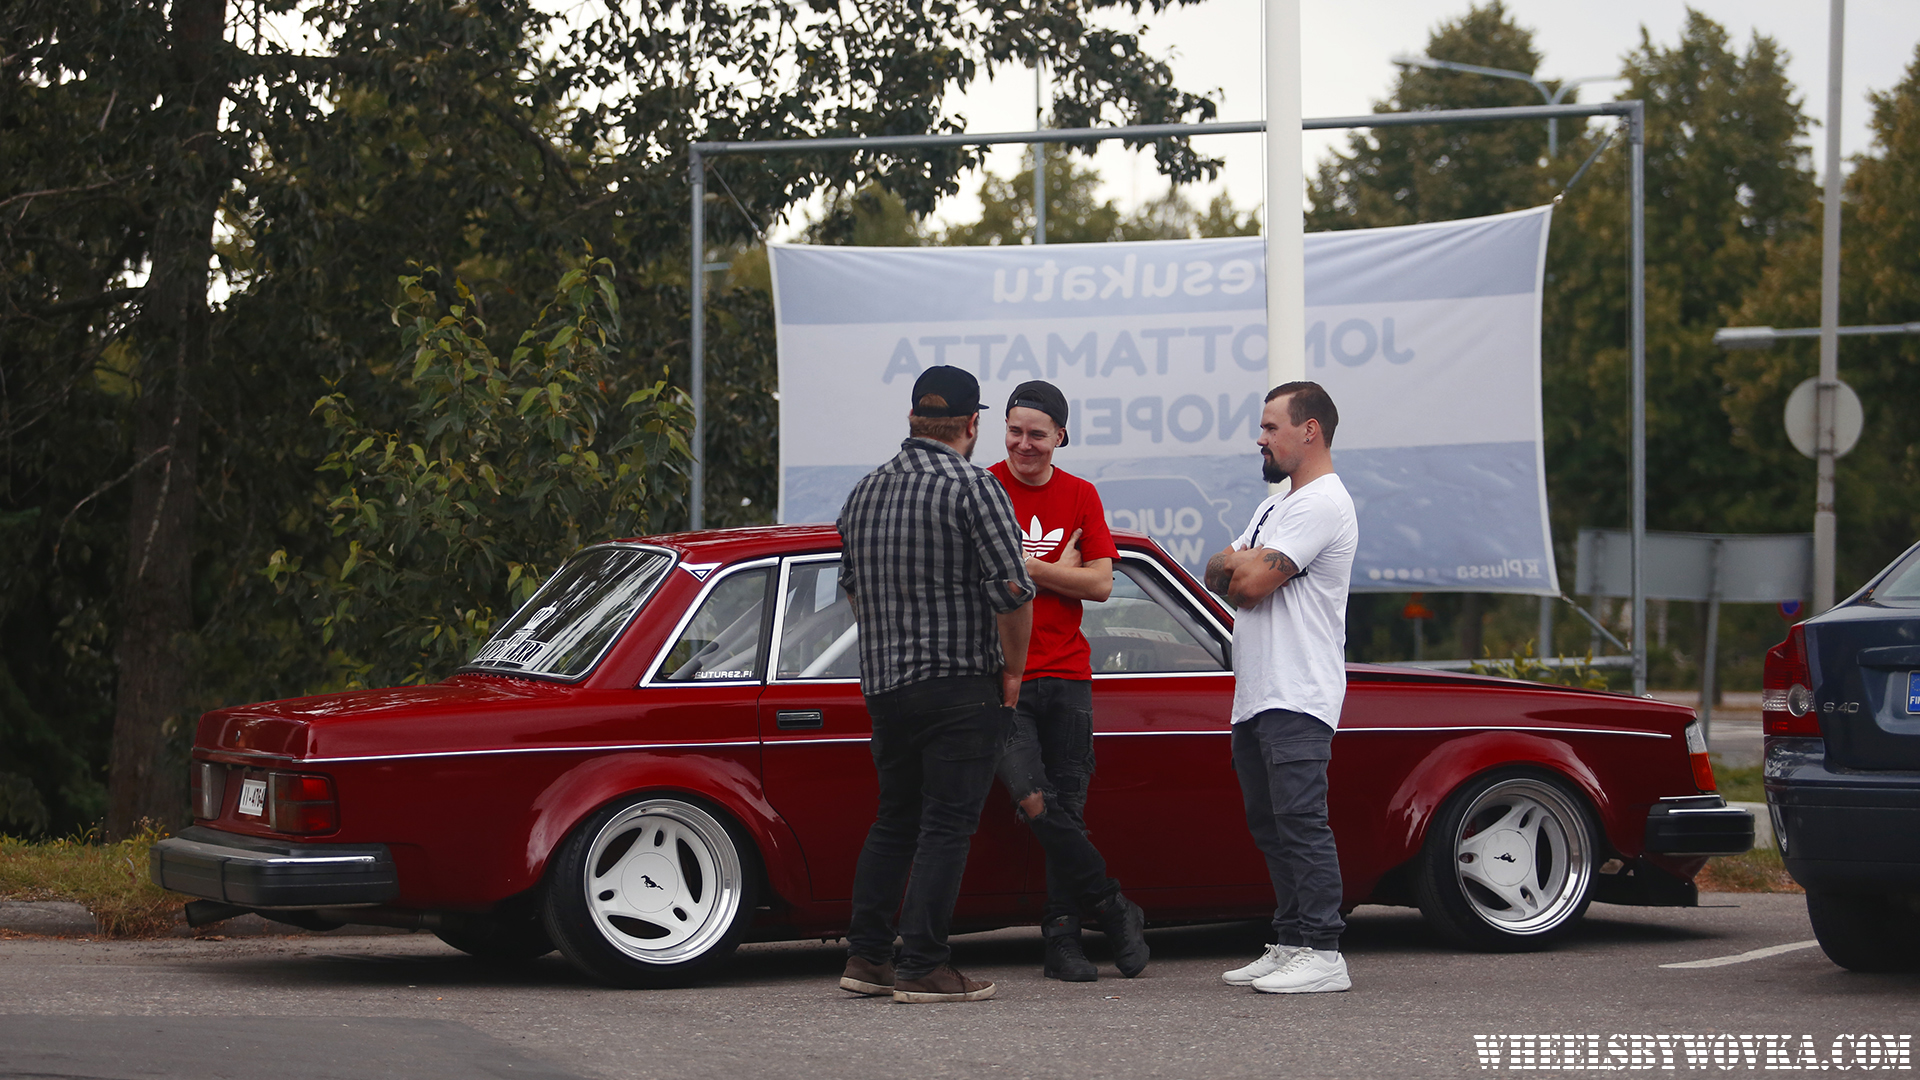 fitted-fest-lahti-finland-cdlcco-2018-by-wheelsbywovka-8